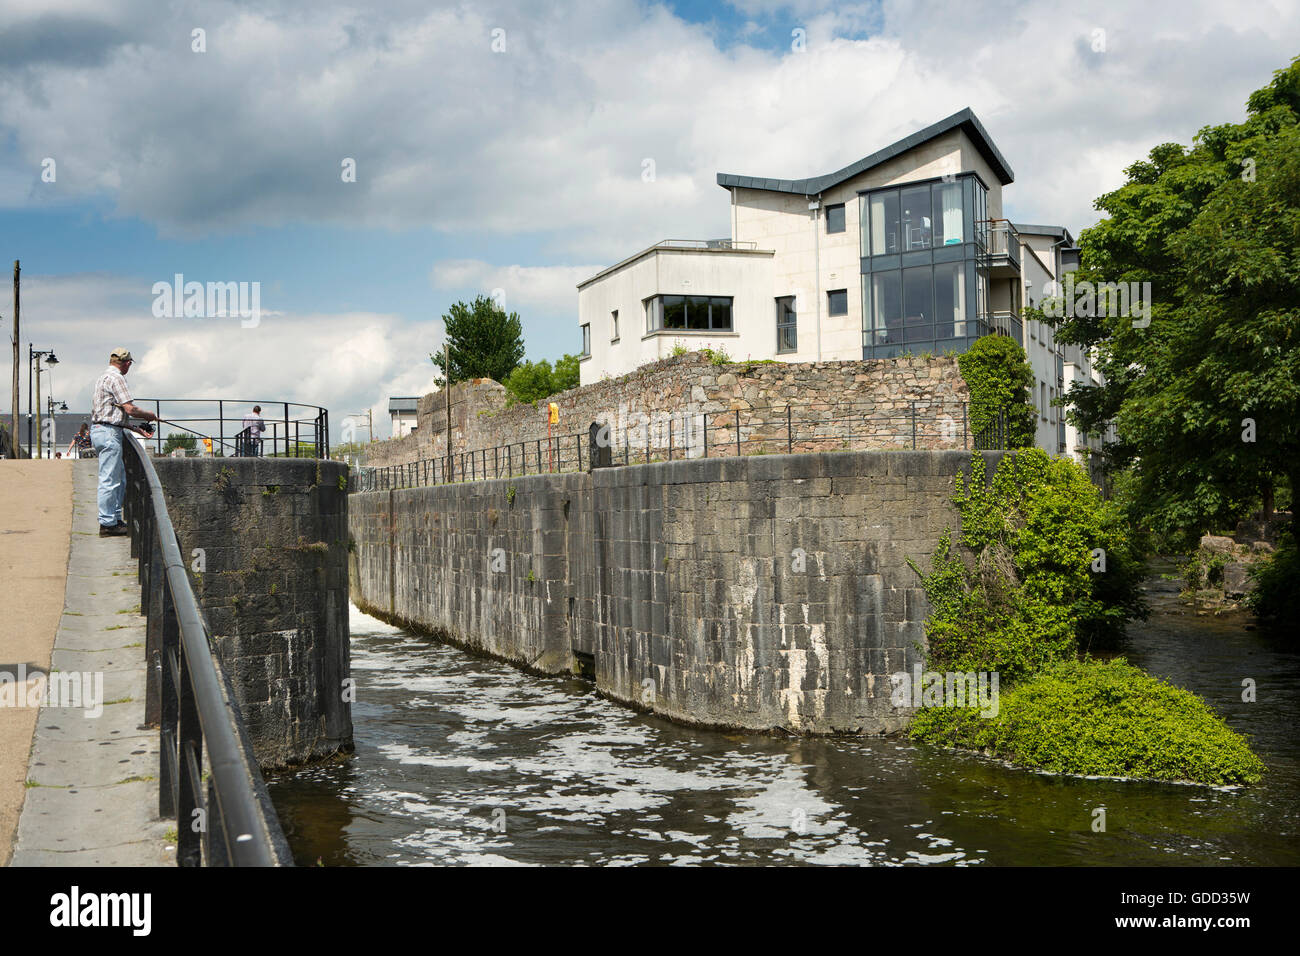 Ireland, Co Galway, Galway, Eglinton Canal flowing towards Corrib River - Stock Image